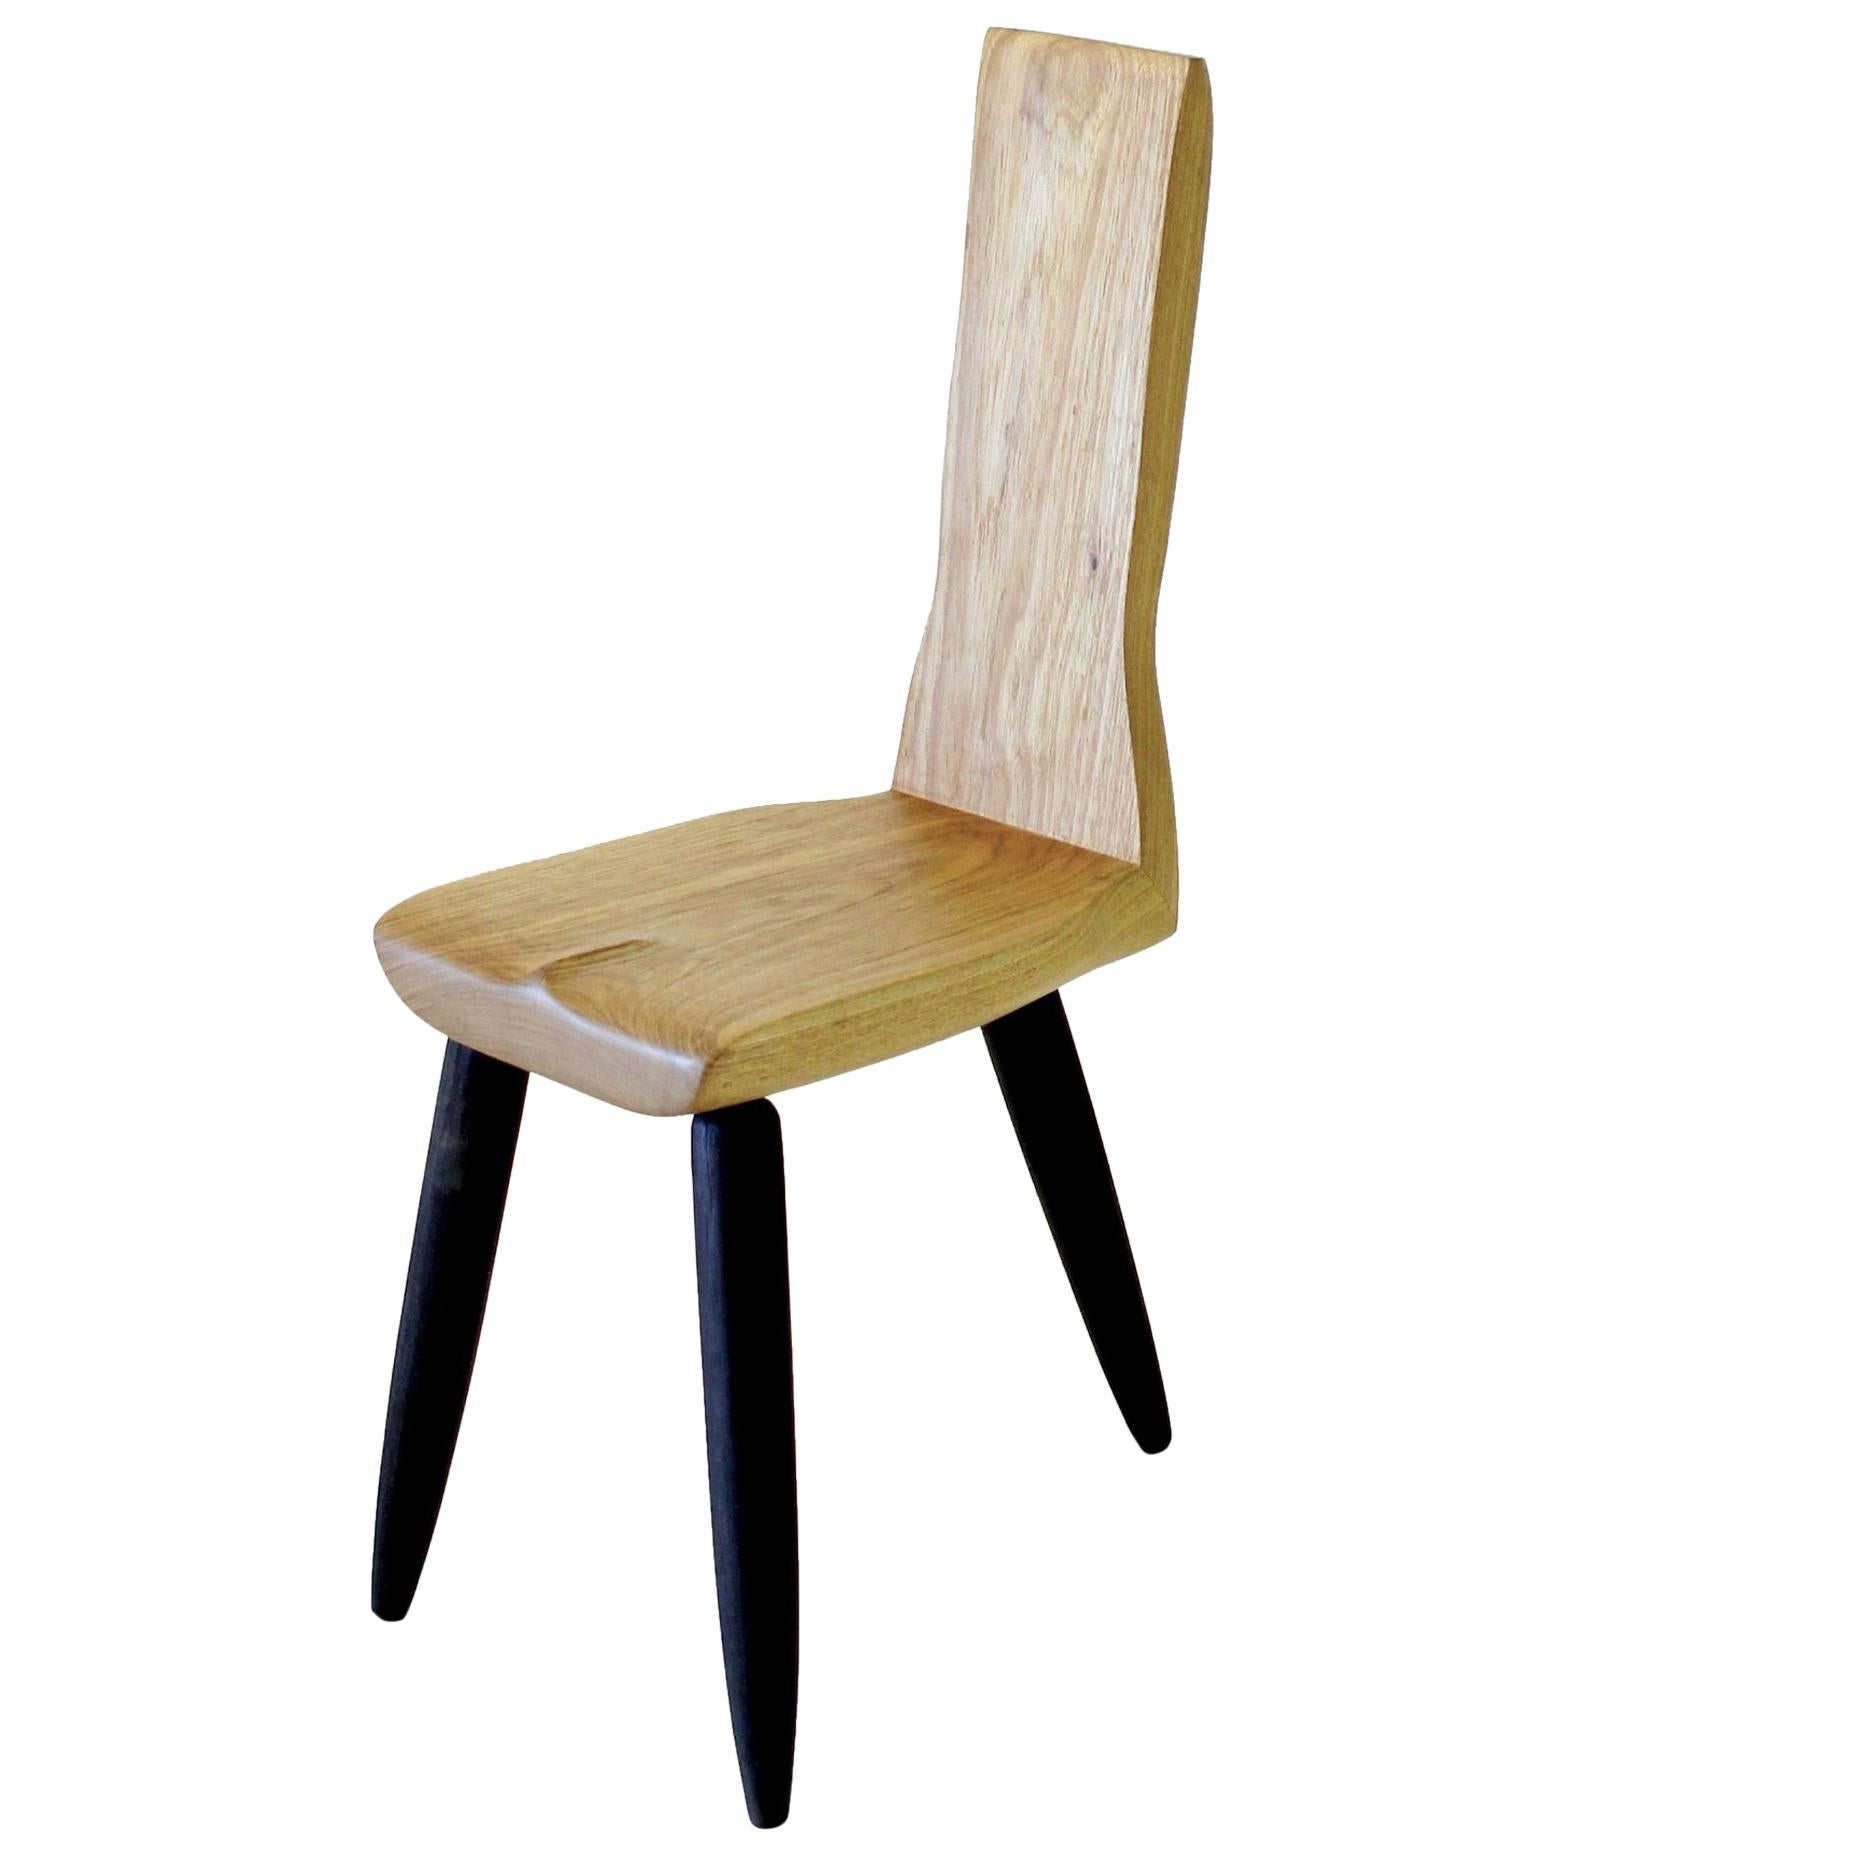 3 legged chair dance moves for seniors zara handmade in solid wood by gustavo dias